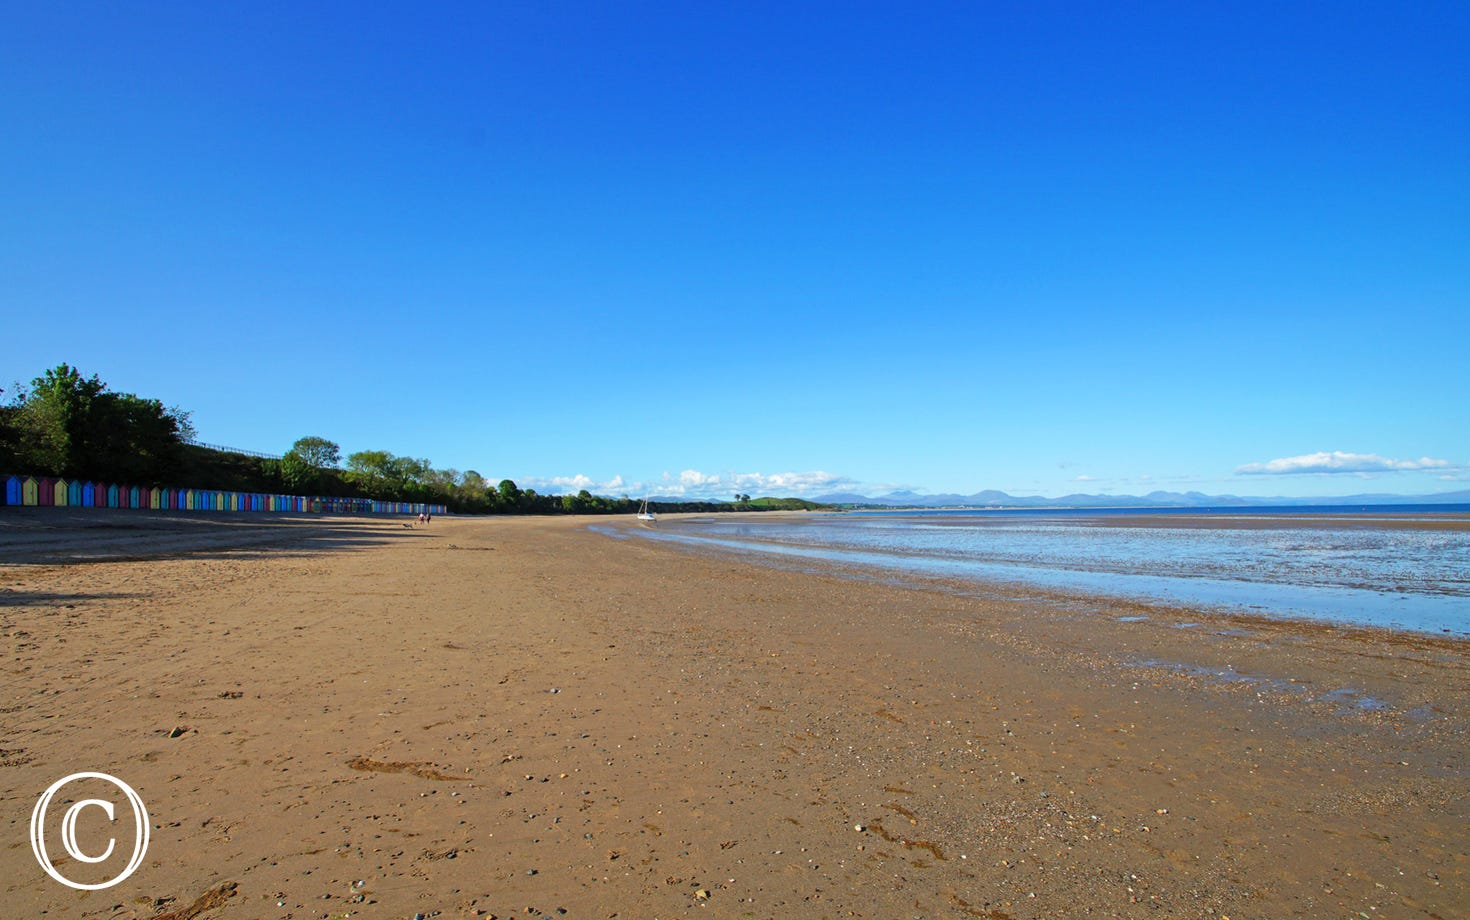 Llanbedrog Beach, another beach that's just a short distance away